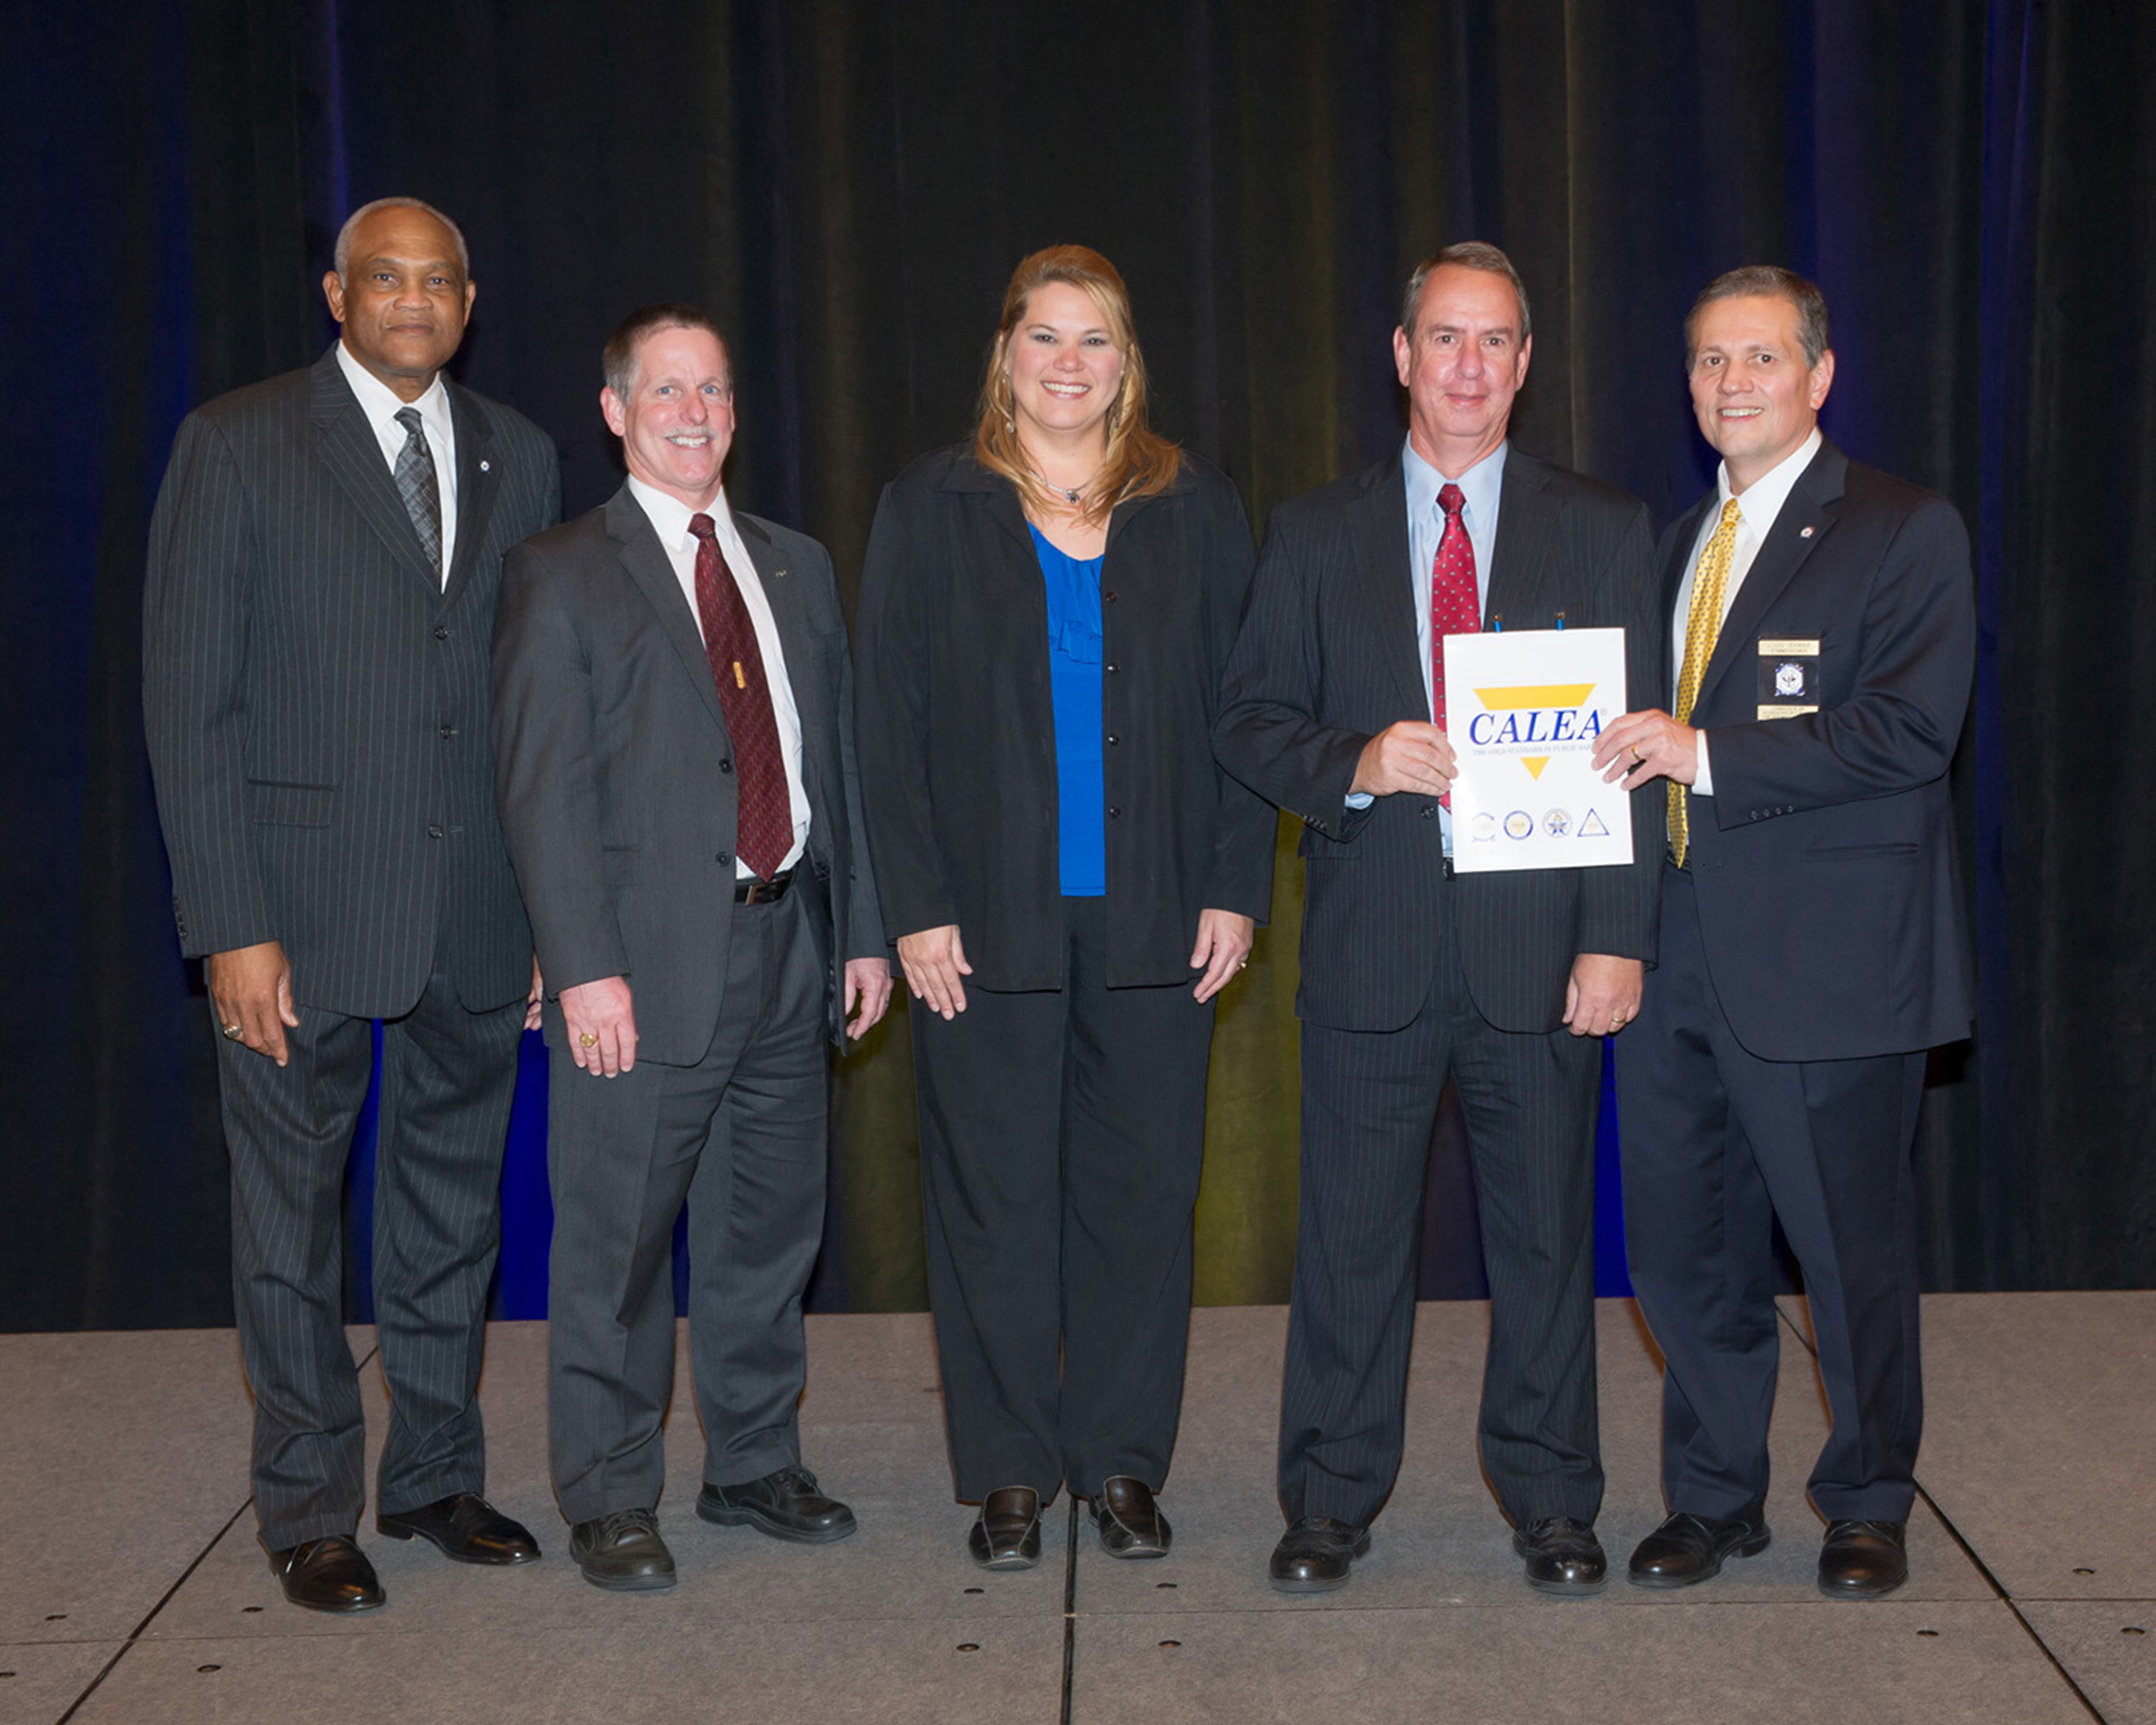 Virginia Tech's Police Department receives fifth CALEA re-accreditation